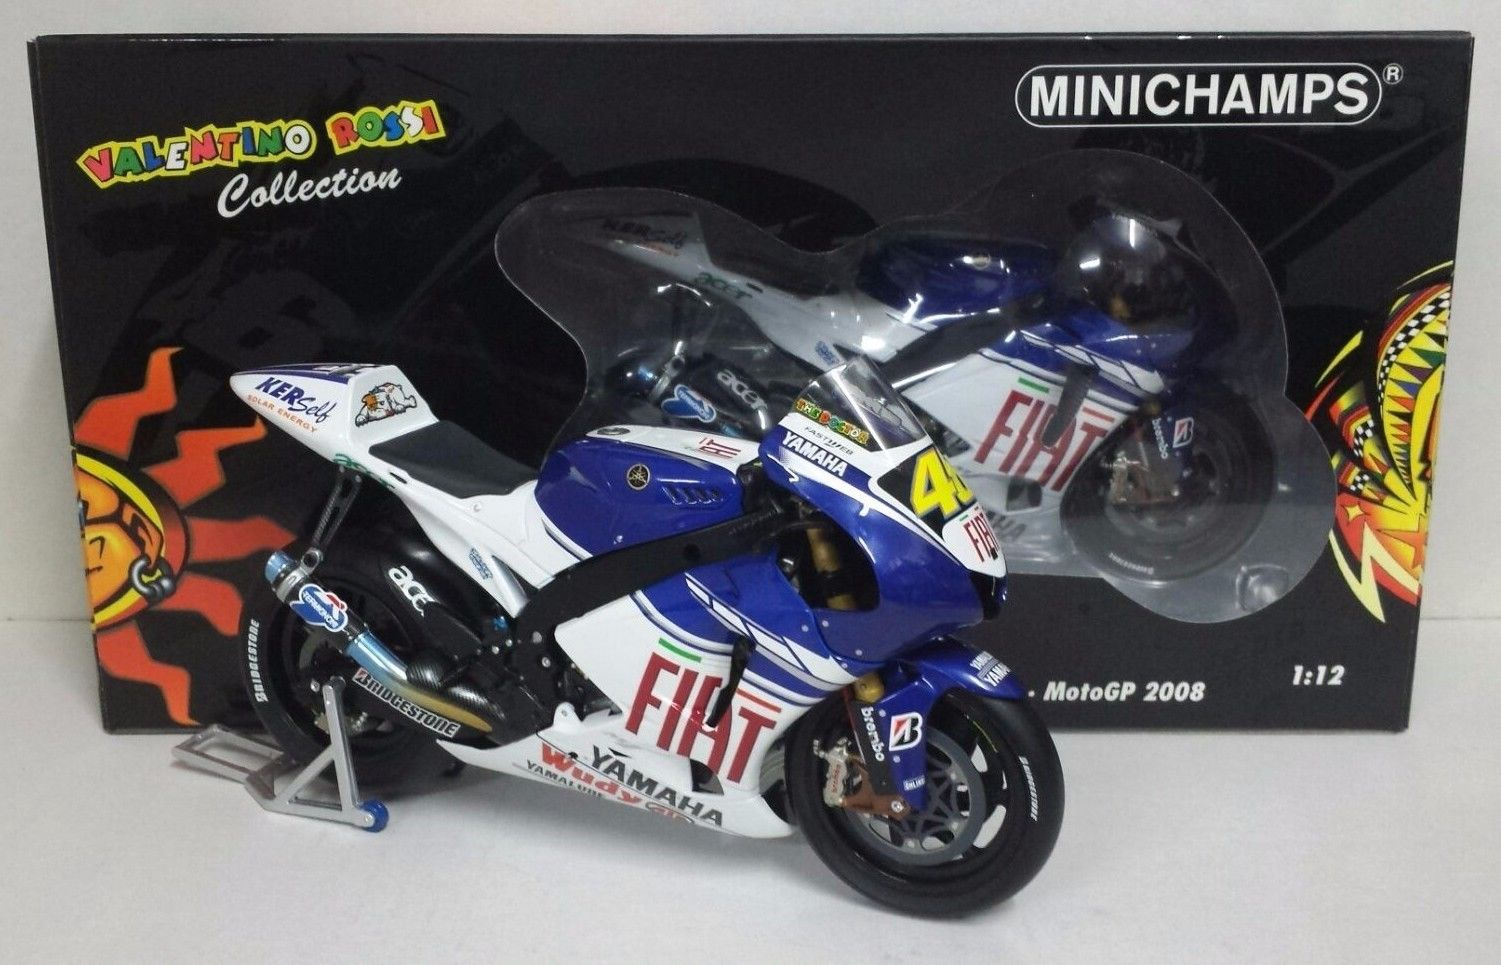 MINICHAMPS VALENTINO ROSSI 1/12 YAMAHA MOTOGP 2008 WORLD CHAMPION LIMITED EDITION RARE